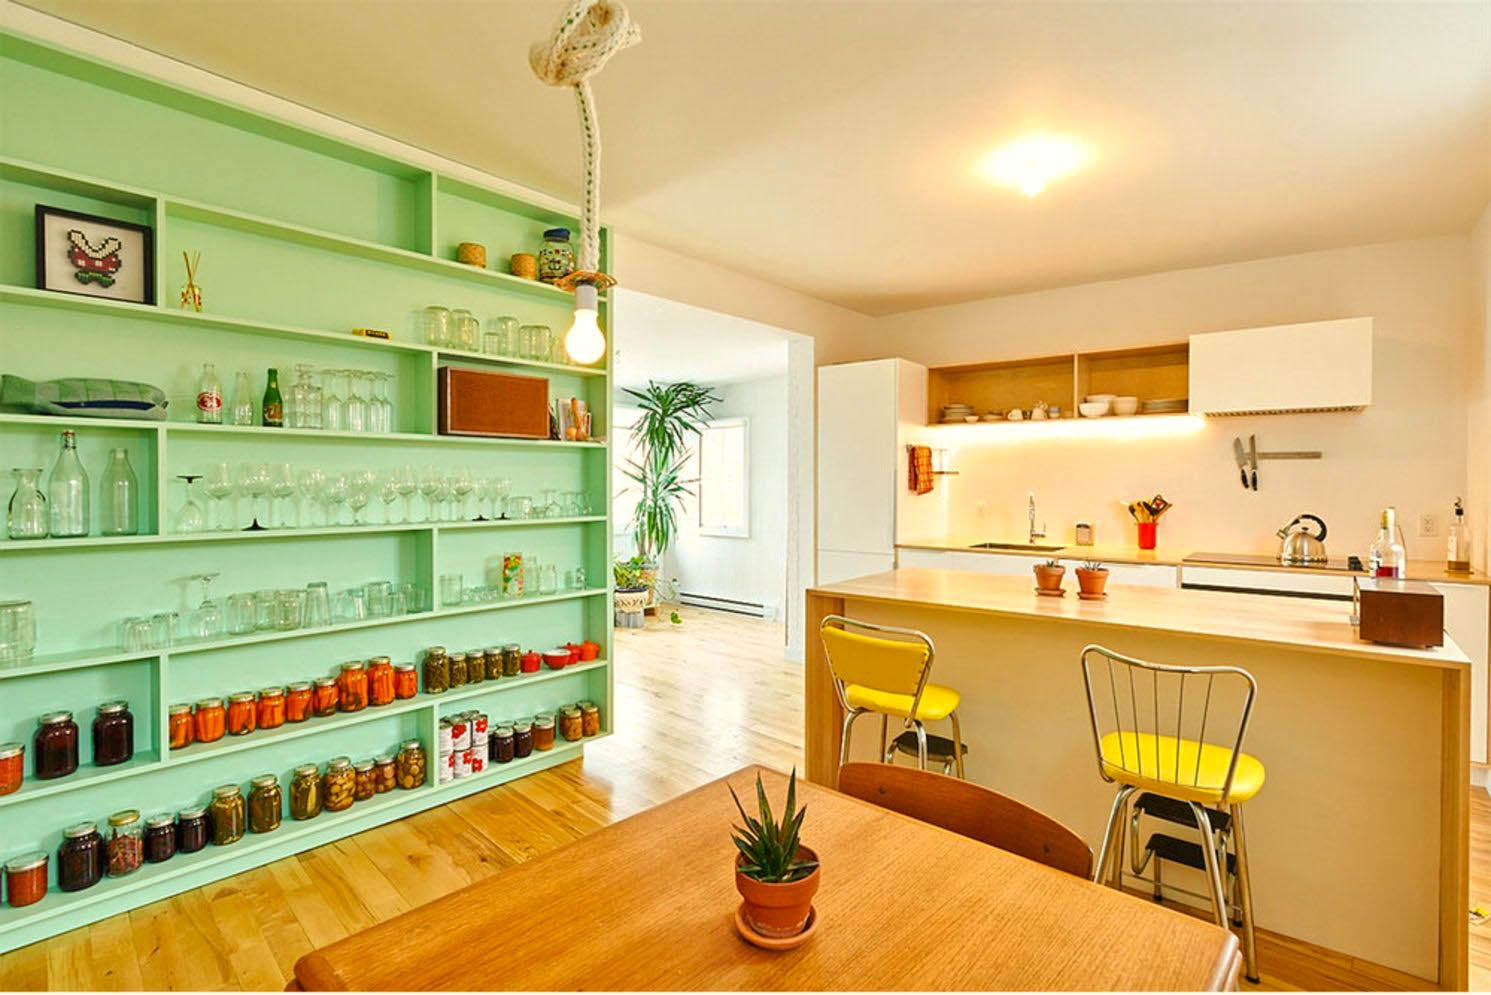 https://elonahome.com/wp-content/uploads/2020/06/Retro-style-of-Green-wall-shelf-to-mantain-style-and-function-in-Marconi-Renovation-done-by-la-Firme-2.jpg